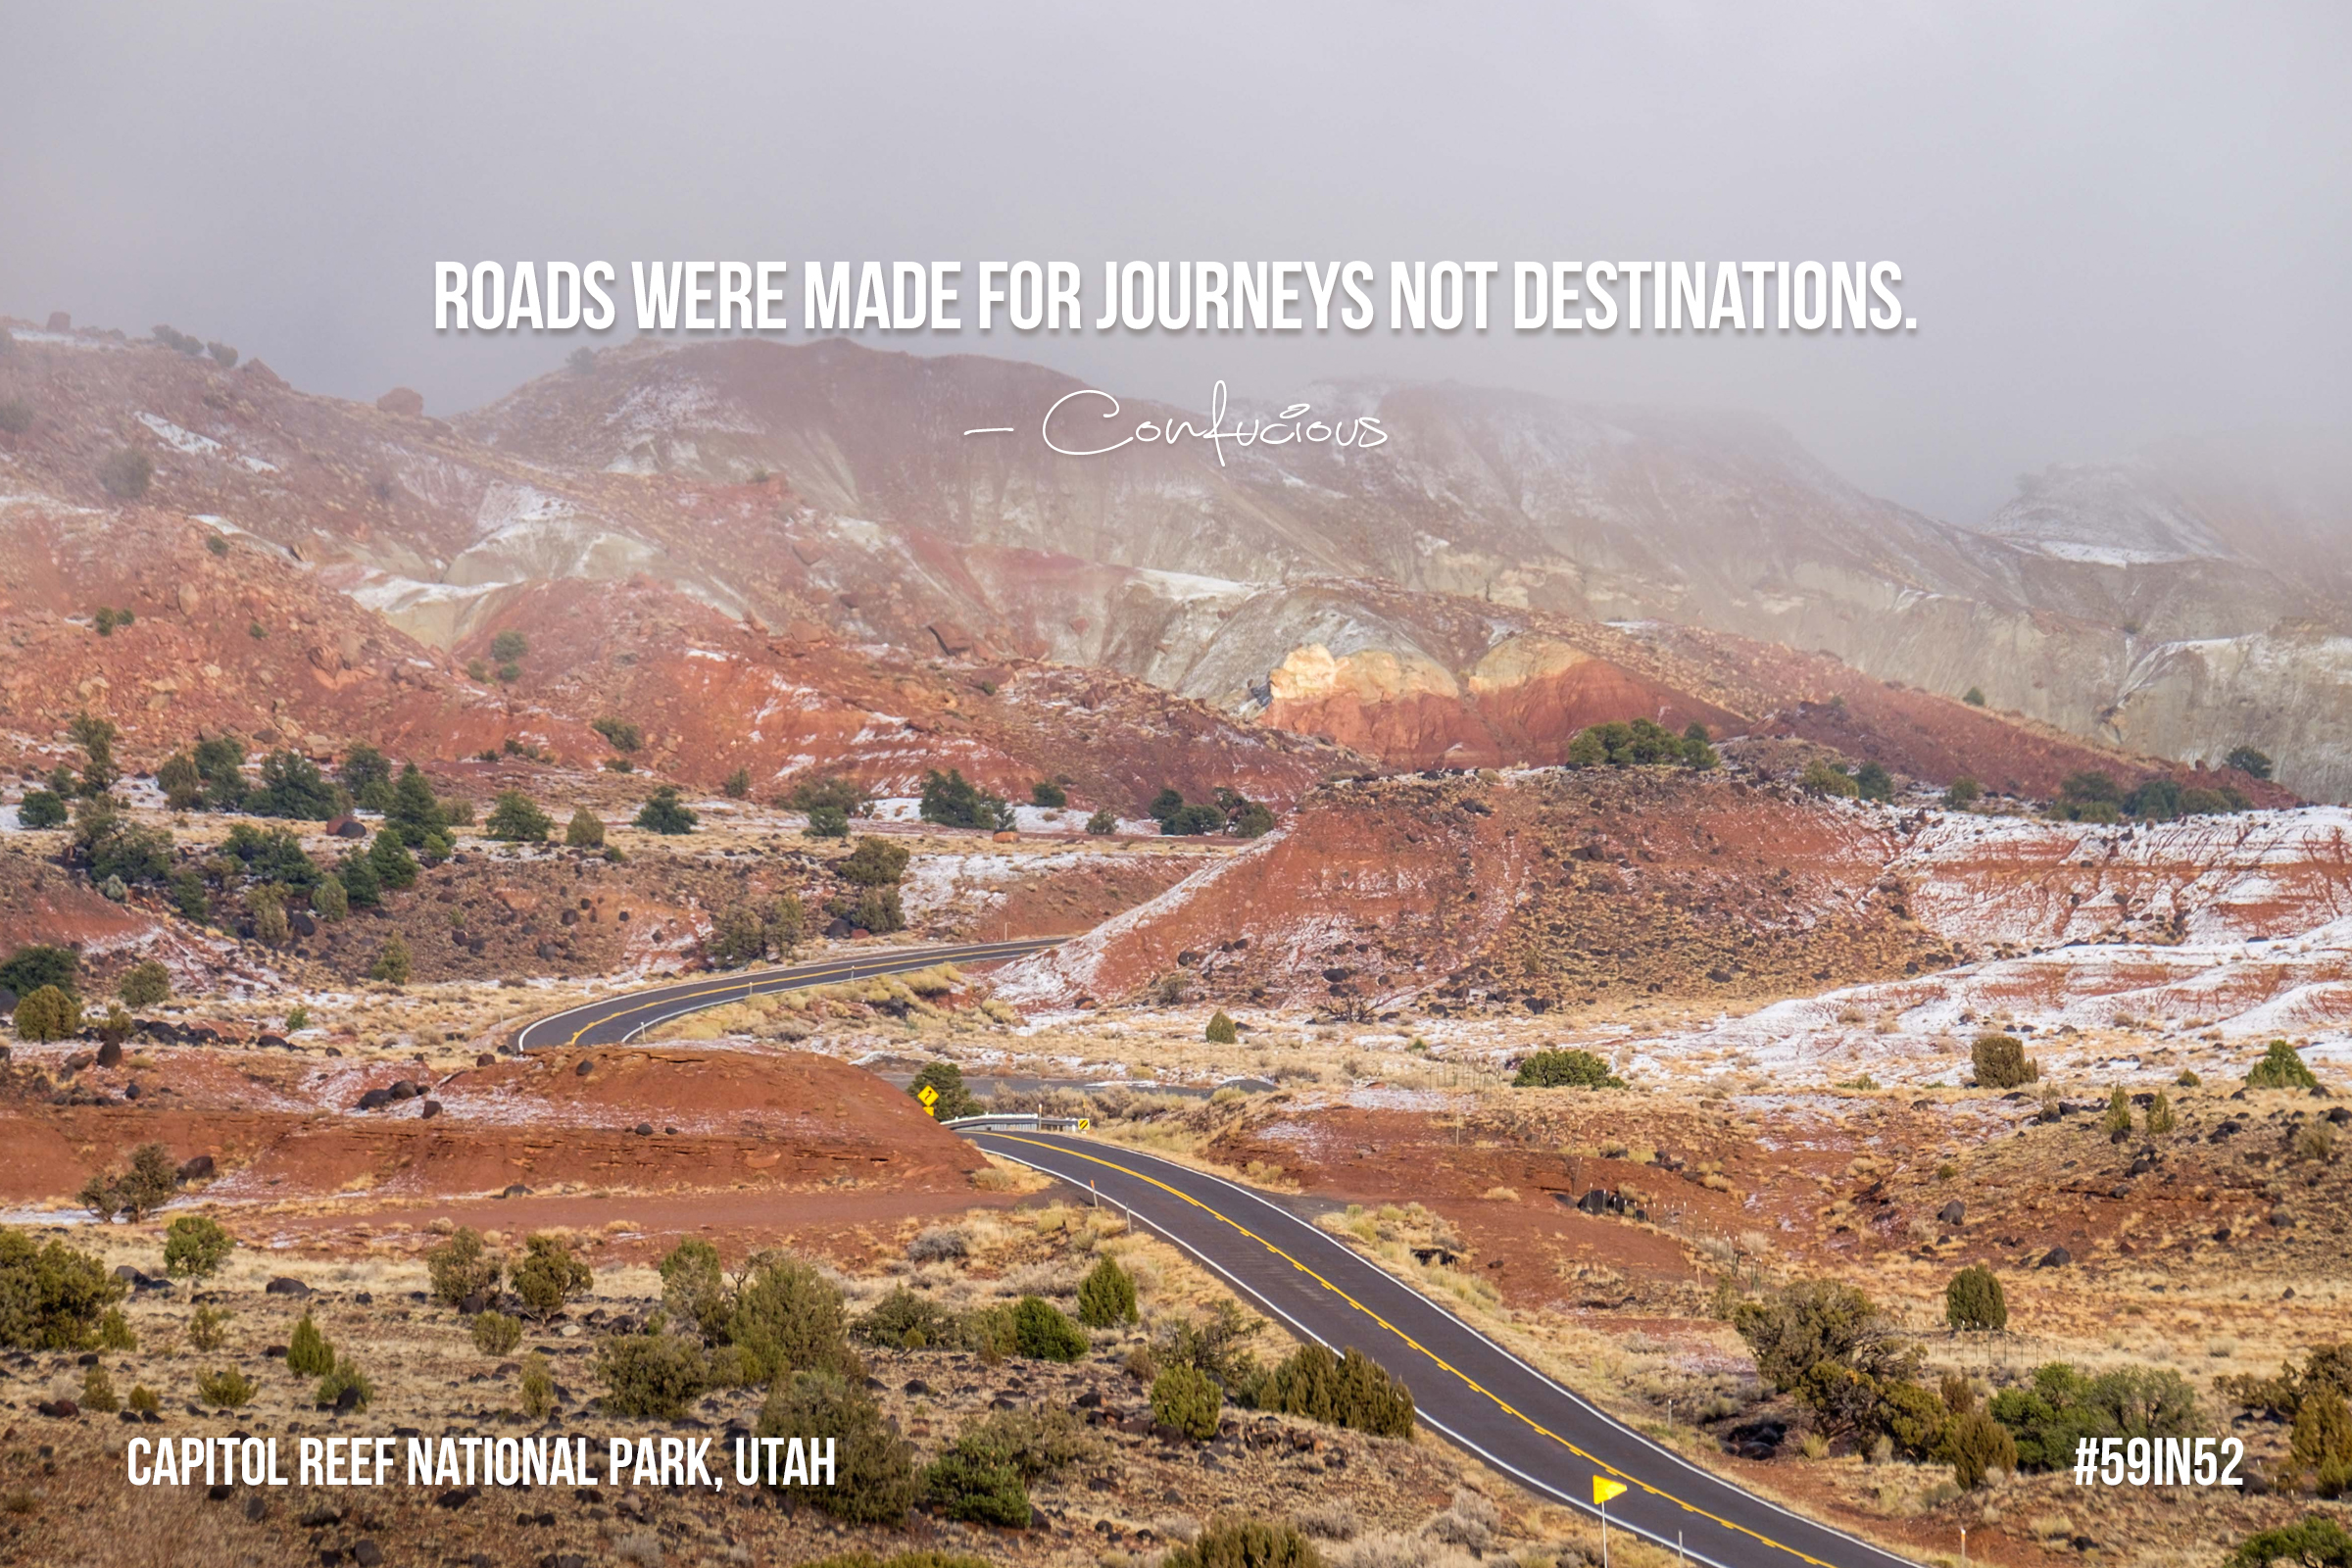 """Roads were made for journeys not destinations."" - Confucious"